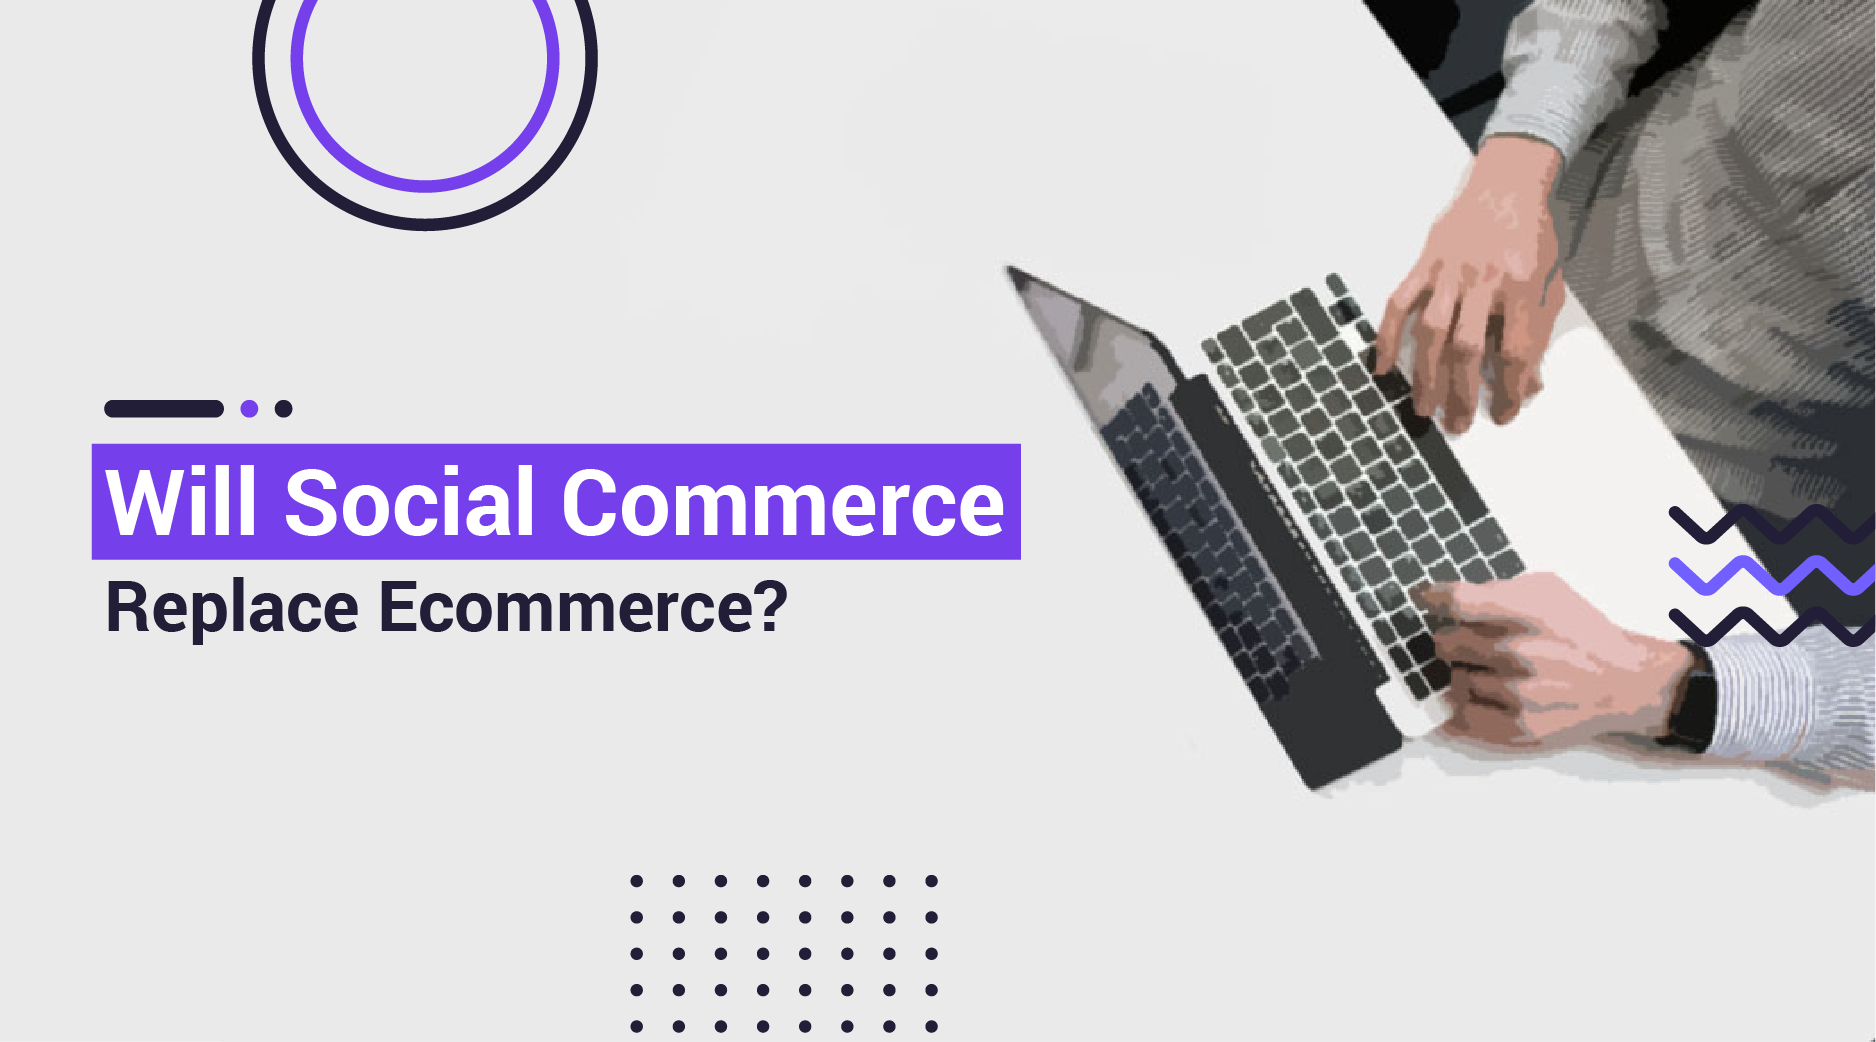 Will Social Commerce Replace Ecommerce